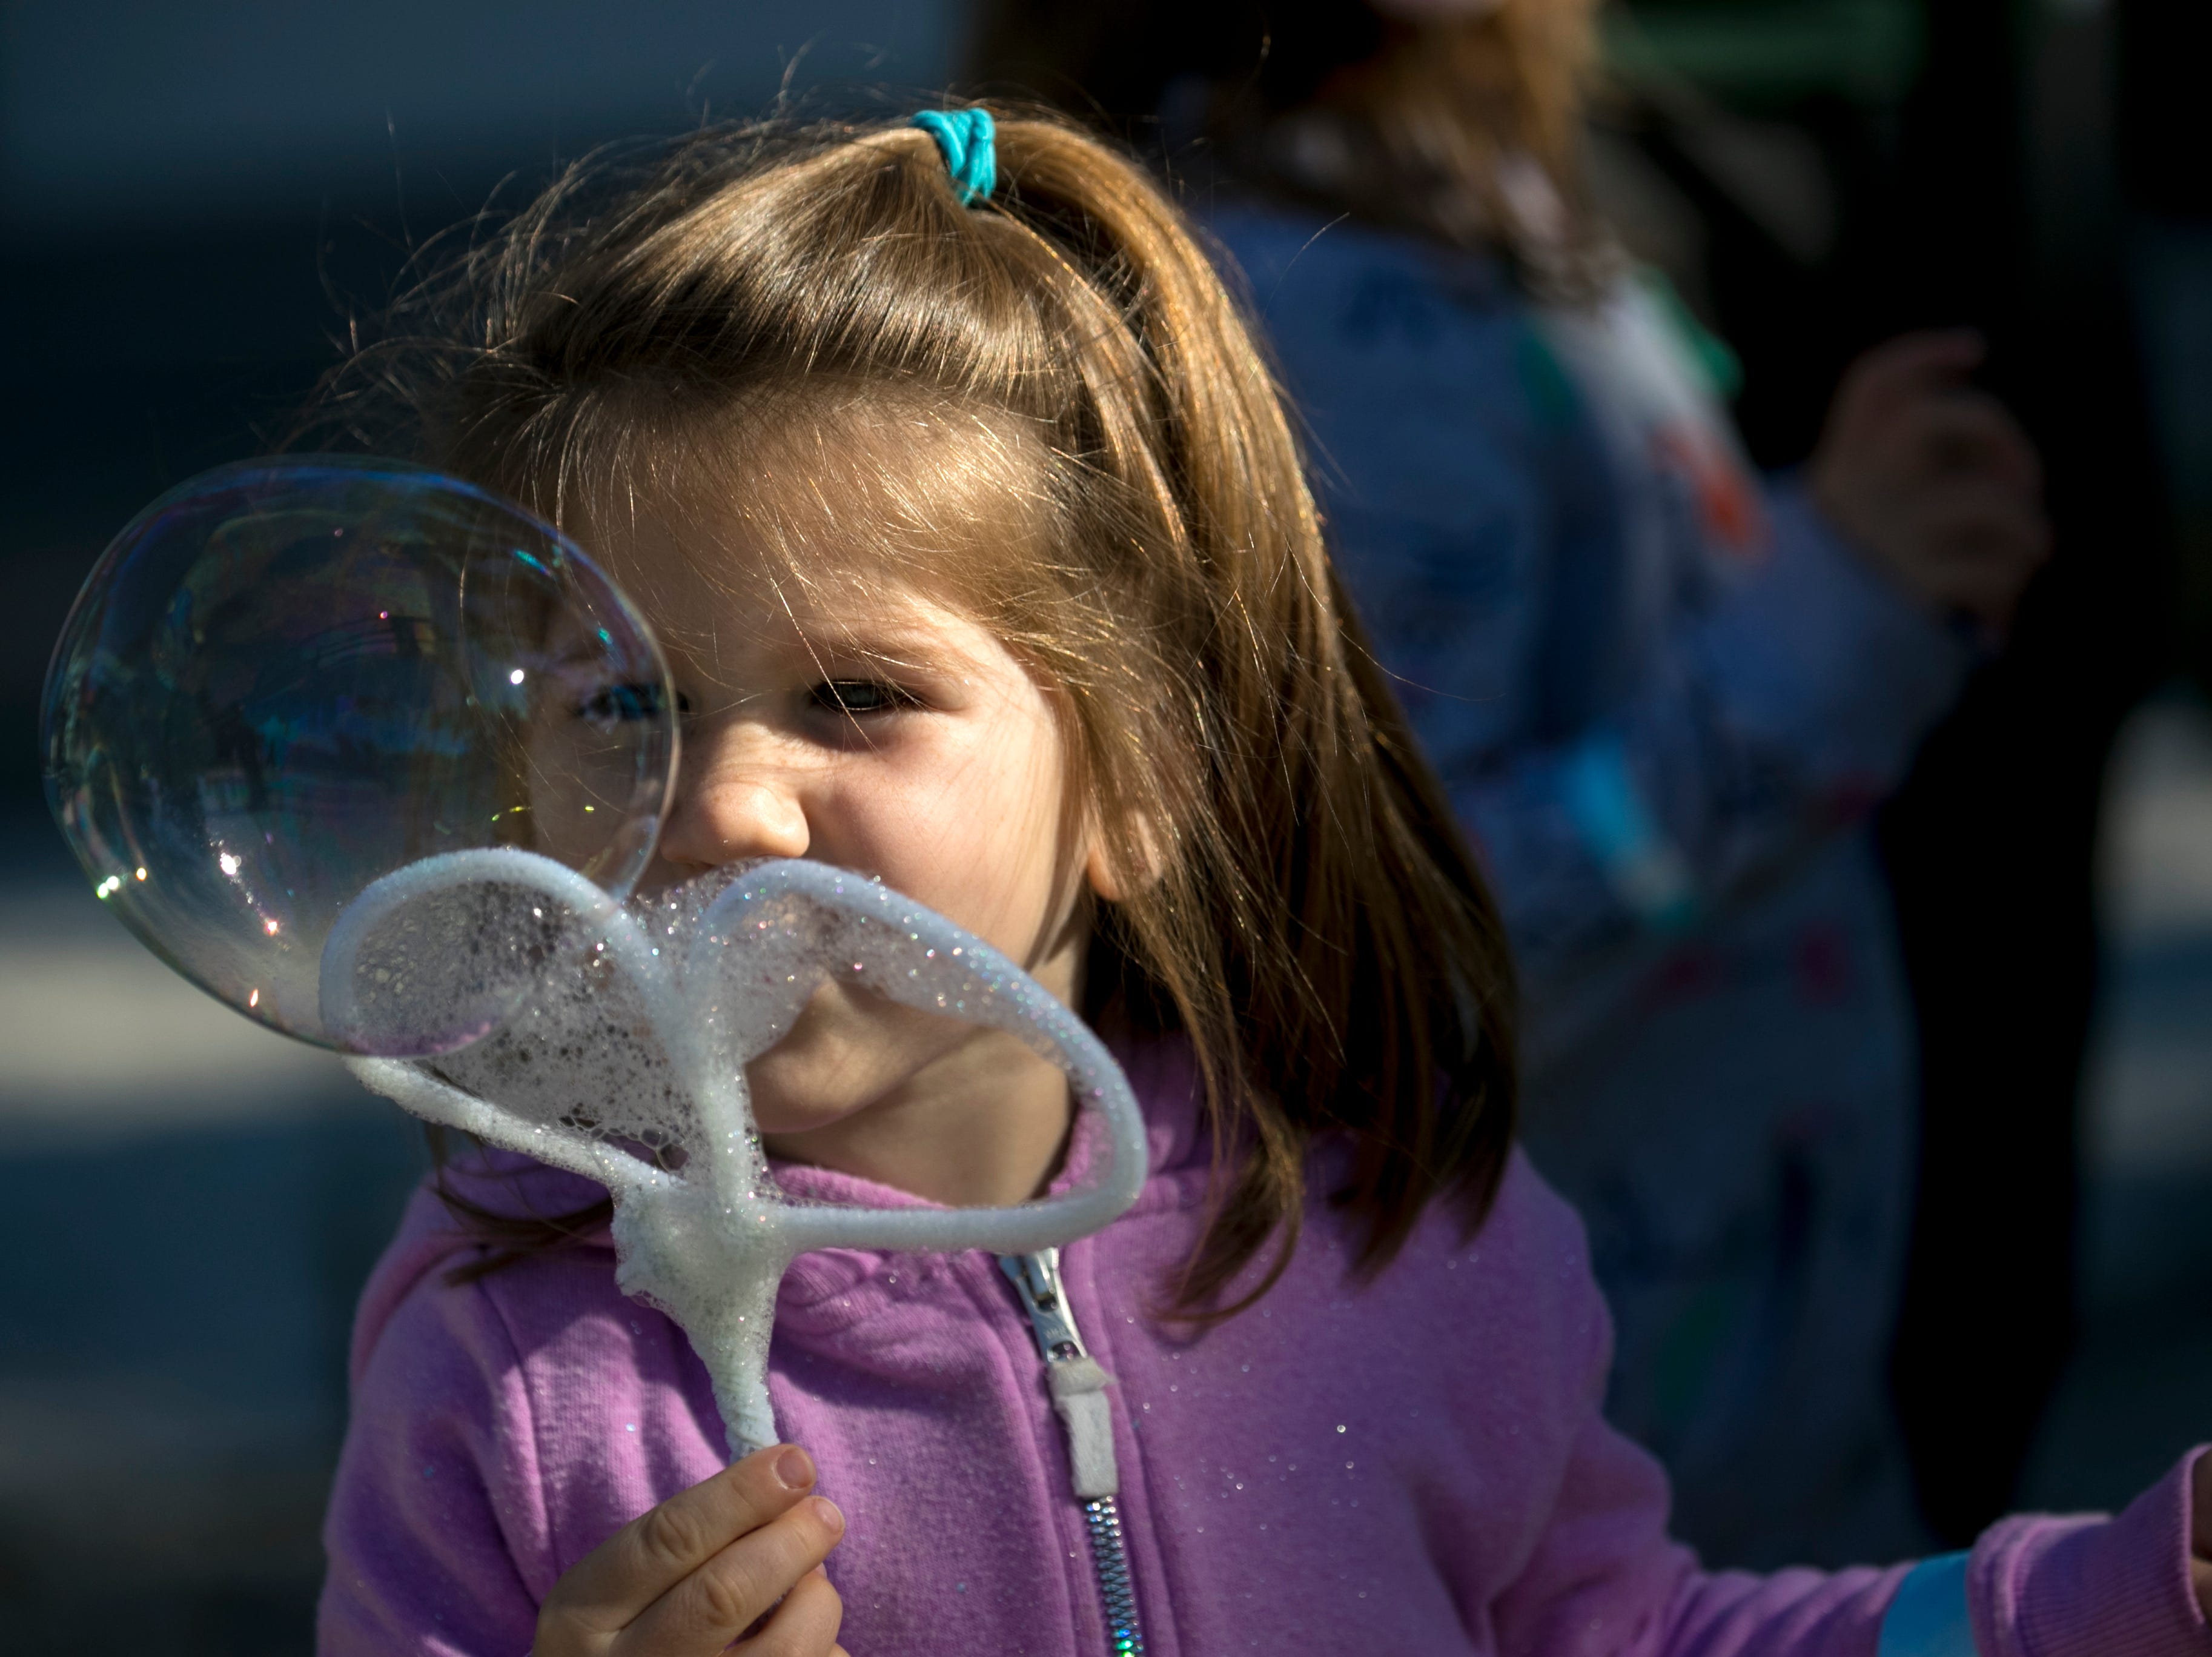 Avery Berry, 3, blows a bubble with the bubble wand she made during the monthly Emerging Inventors program on Thursday, January 17, 2019, at the Edison & Ford Winter Estates in Fort Myers. This month's program was called Bouncing Bubbles. The next program, which is for children 5 and younger, is February 21 at 9:30 am, and is called is LEGO Art and Engineering.